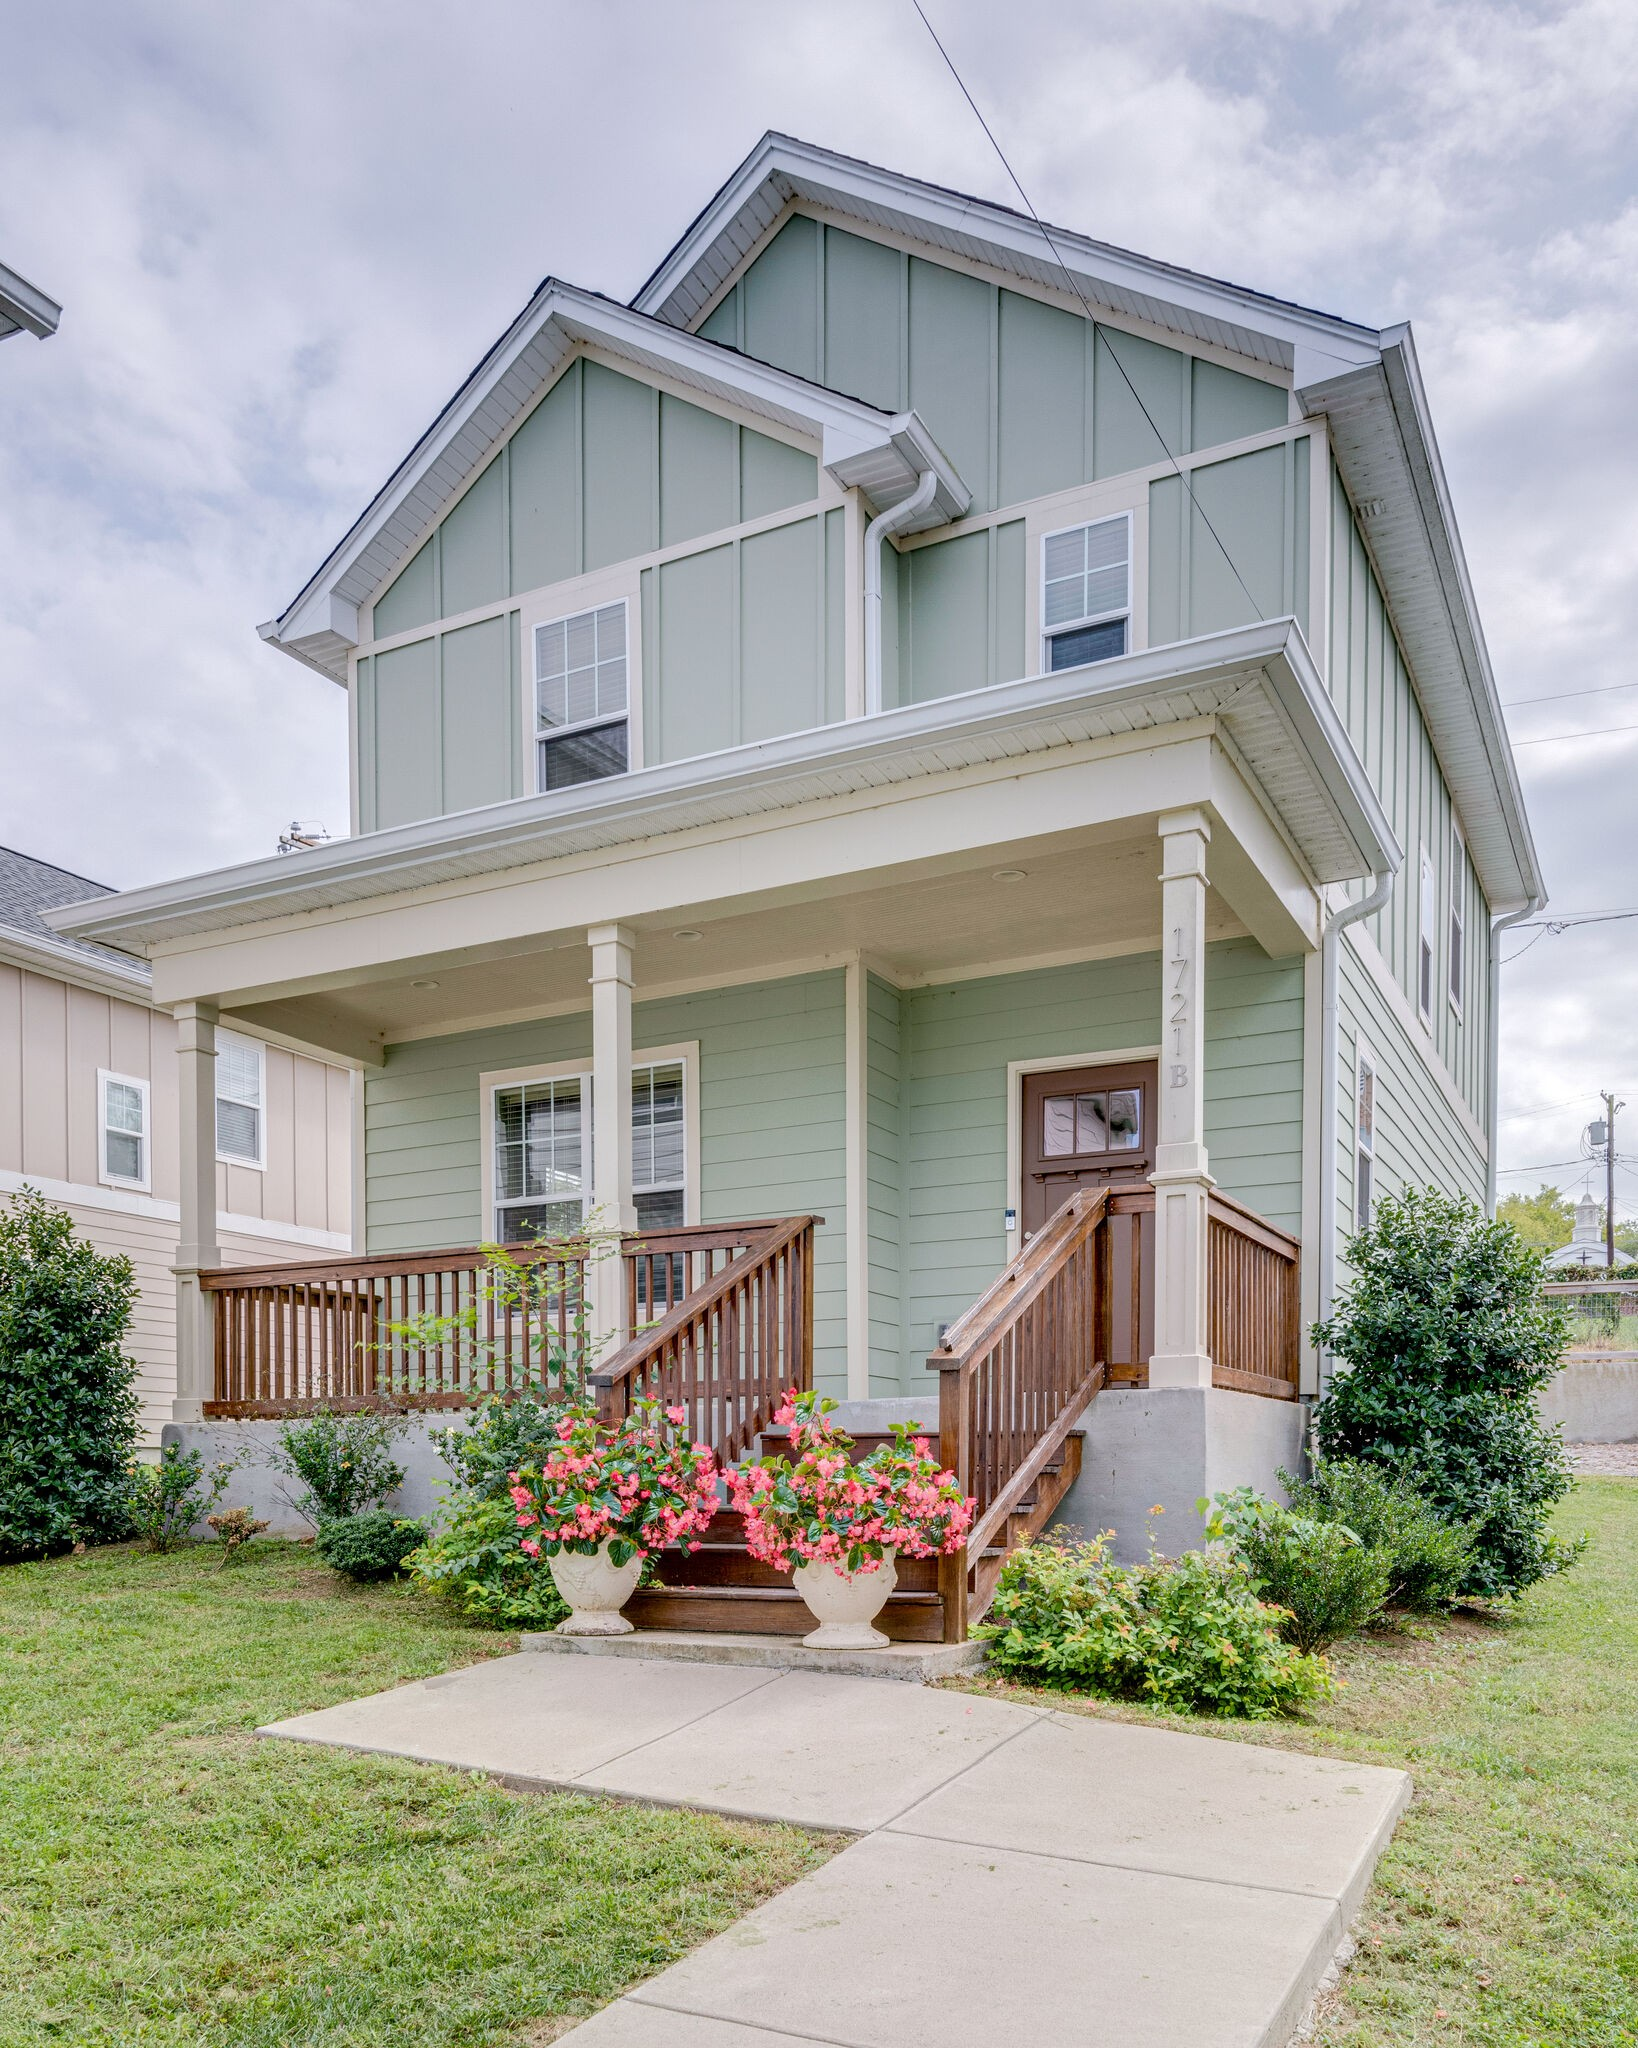 1721B Nubell St Property Photo - Nashville, TN real estate listing